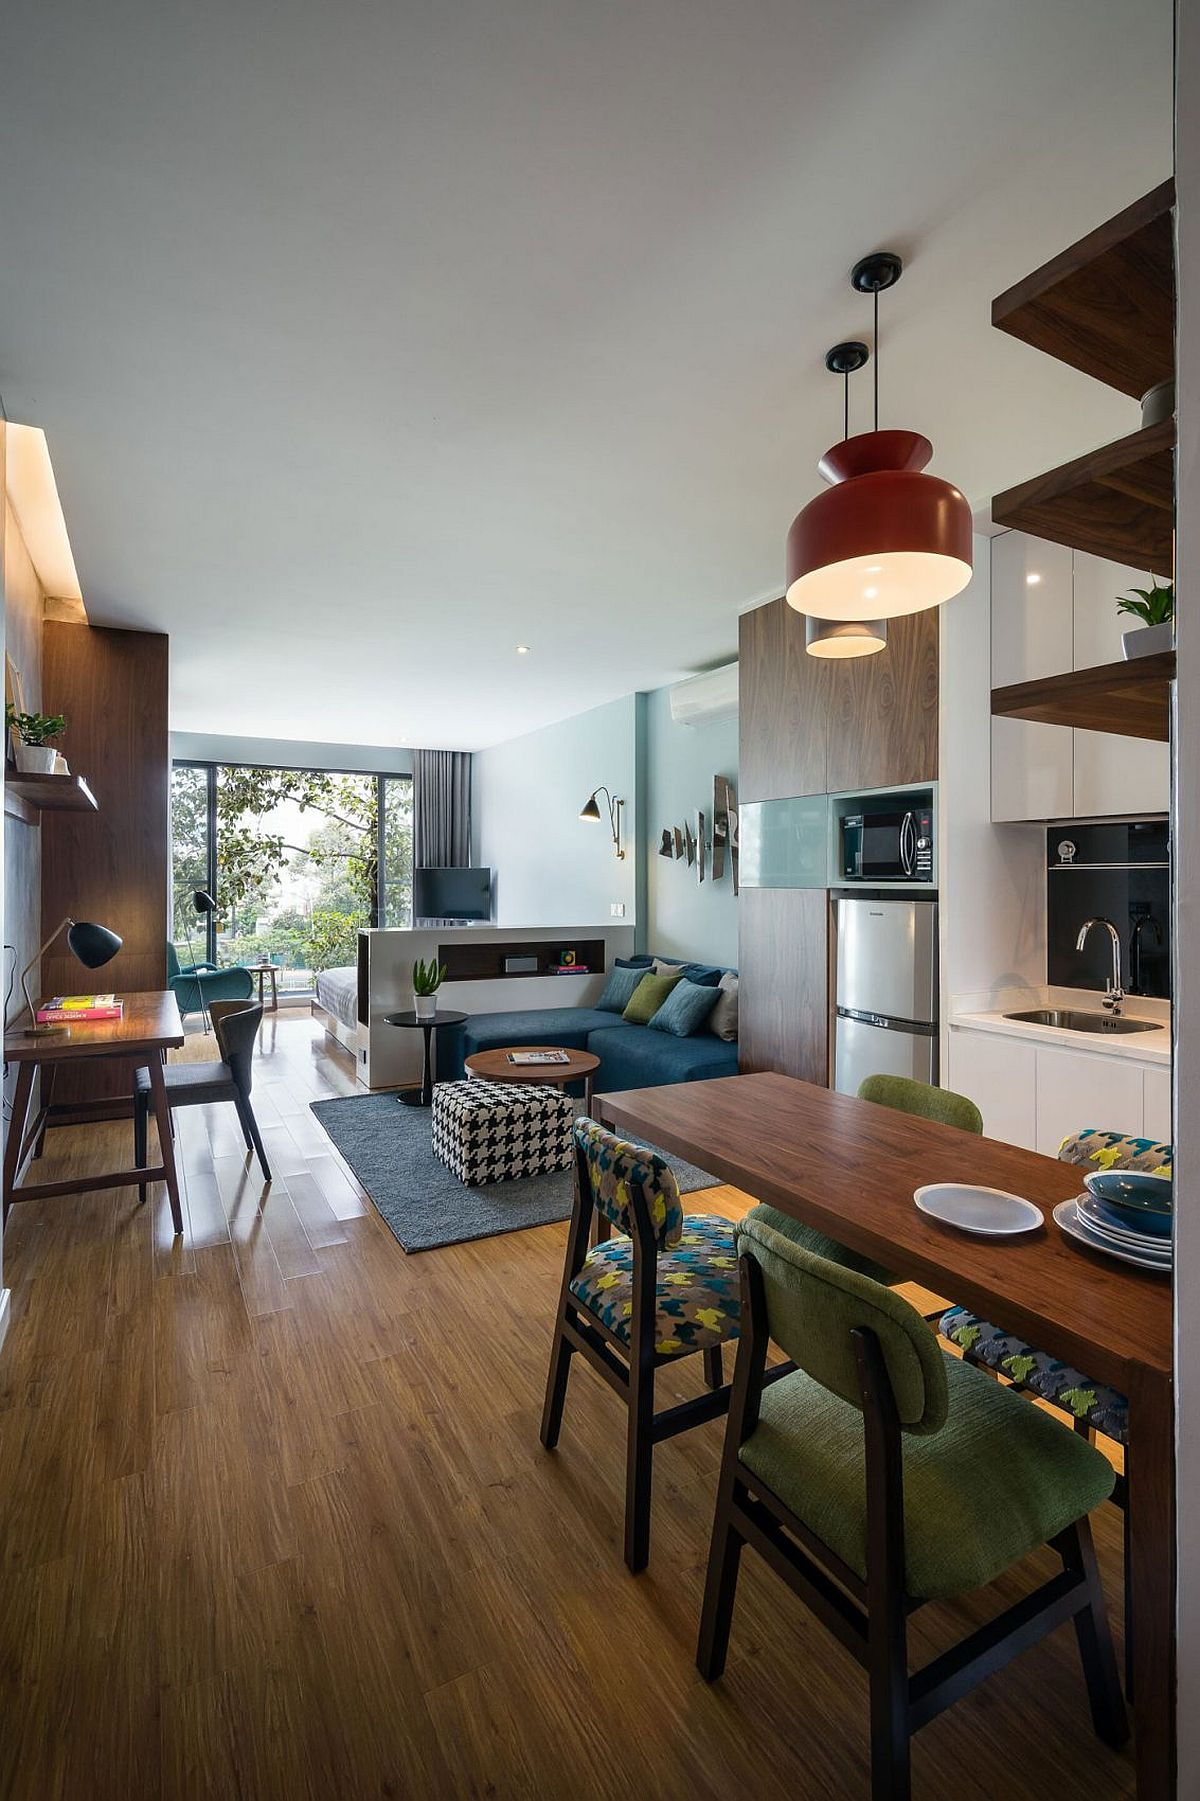 Open living area, kitchen and dining with a small sectional couch in blue and workdesk